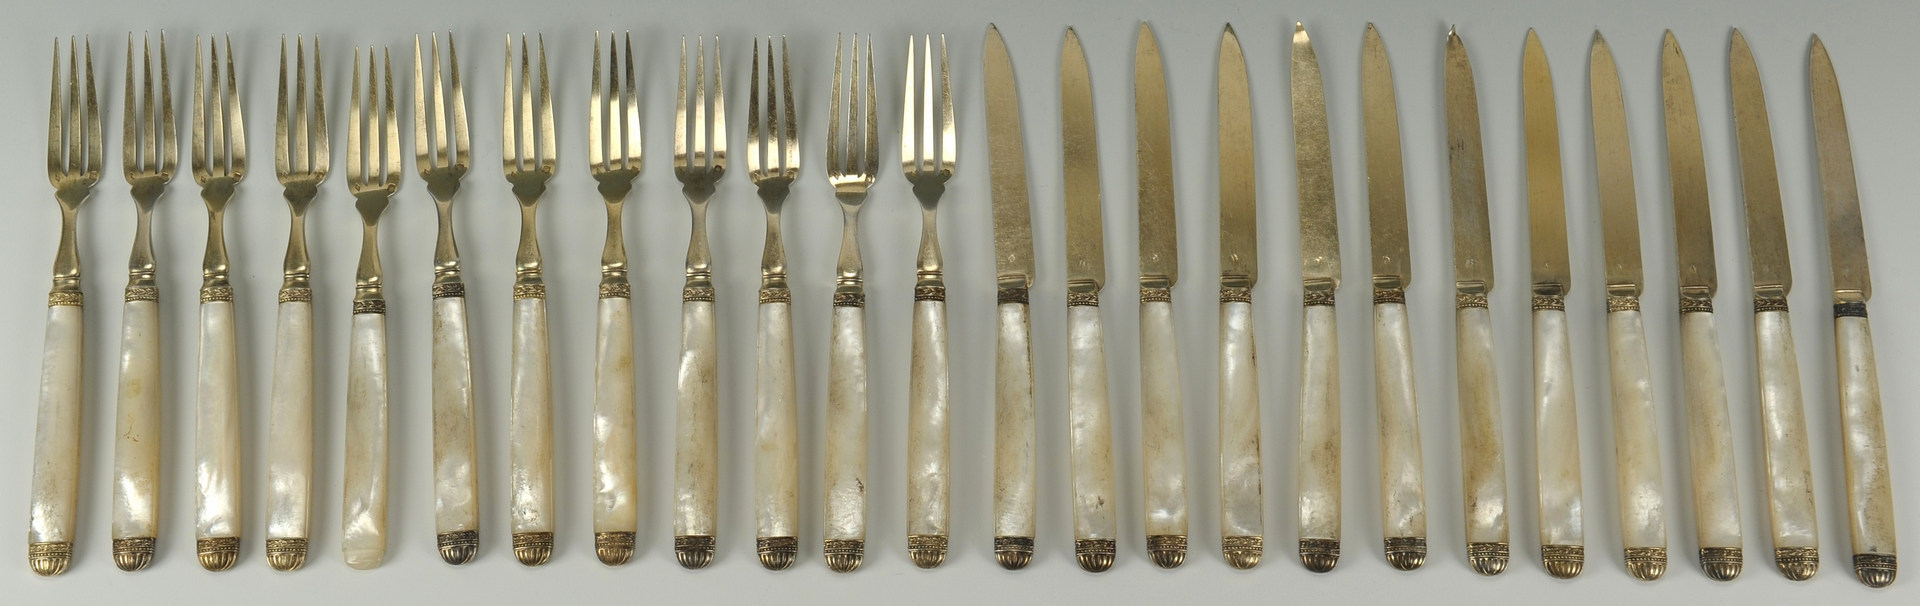 Lot 414: 24 Touron Pearl Handle French Sterling Forks and K